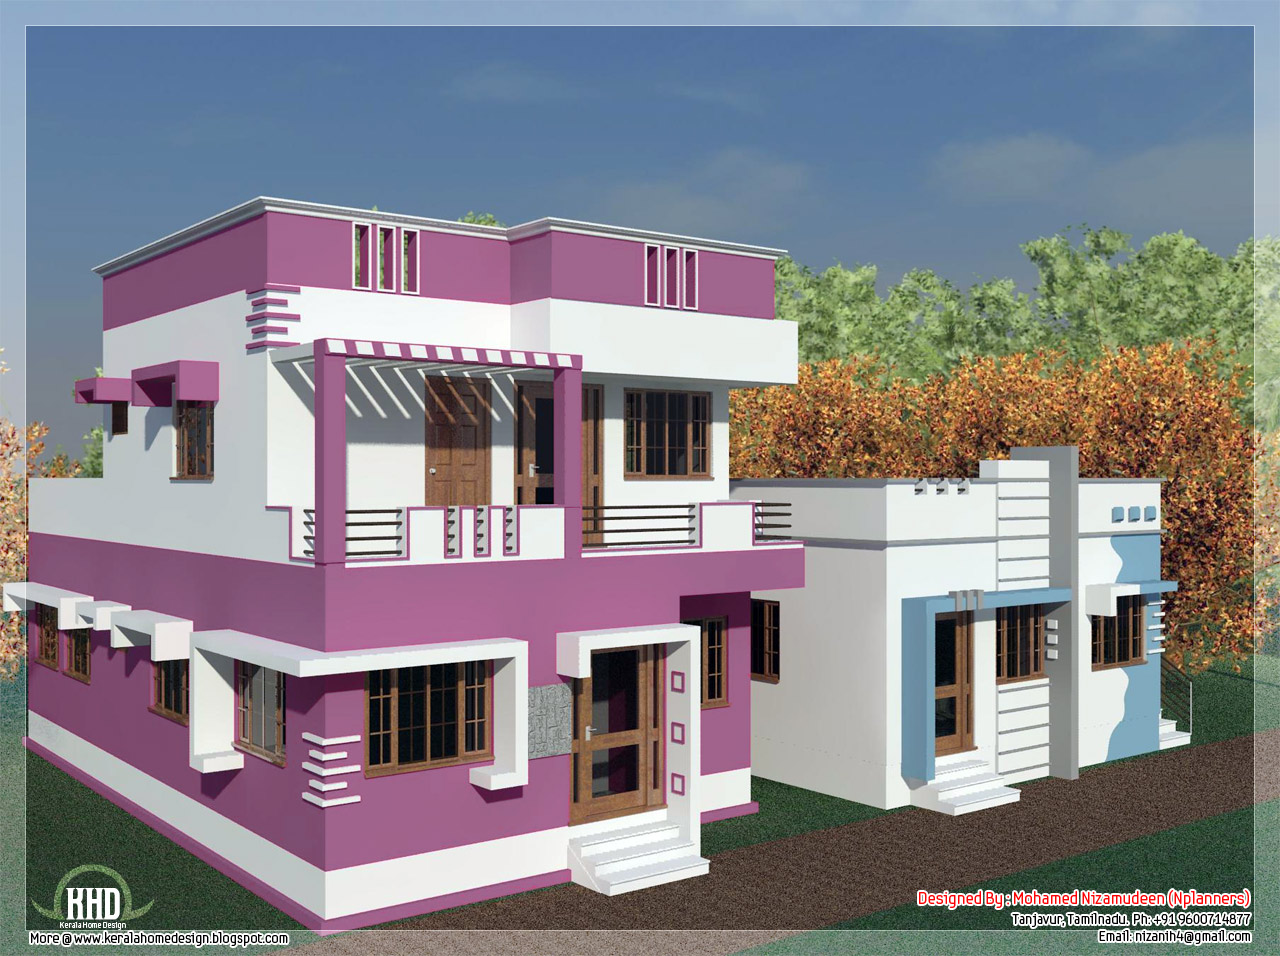 Tamilnadu model home desgin in 3000 kerala home design architecture house plans House design images